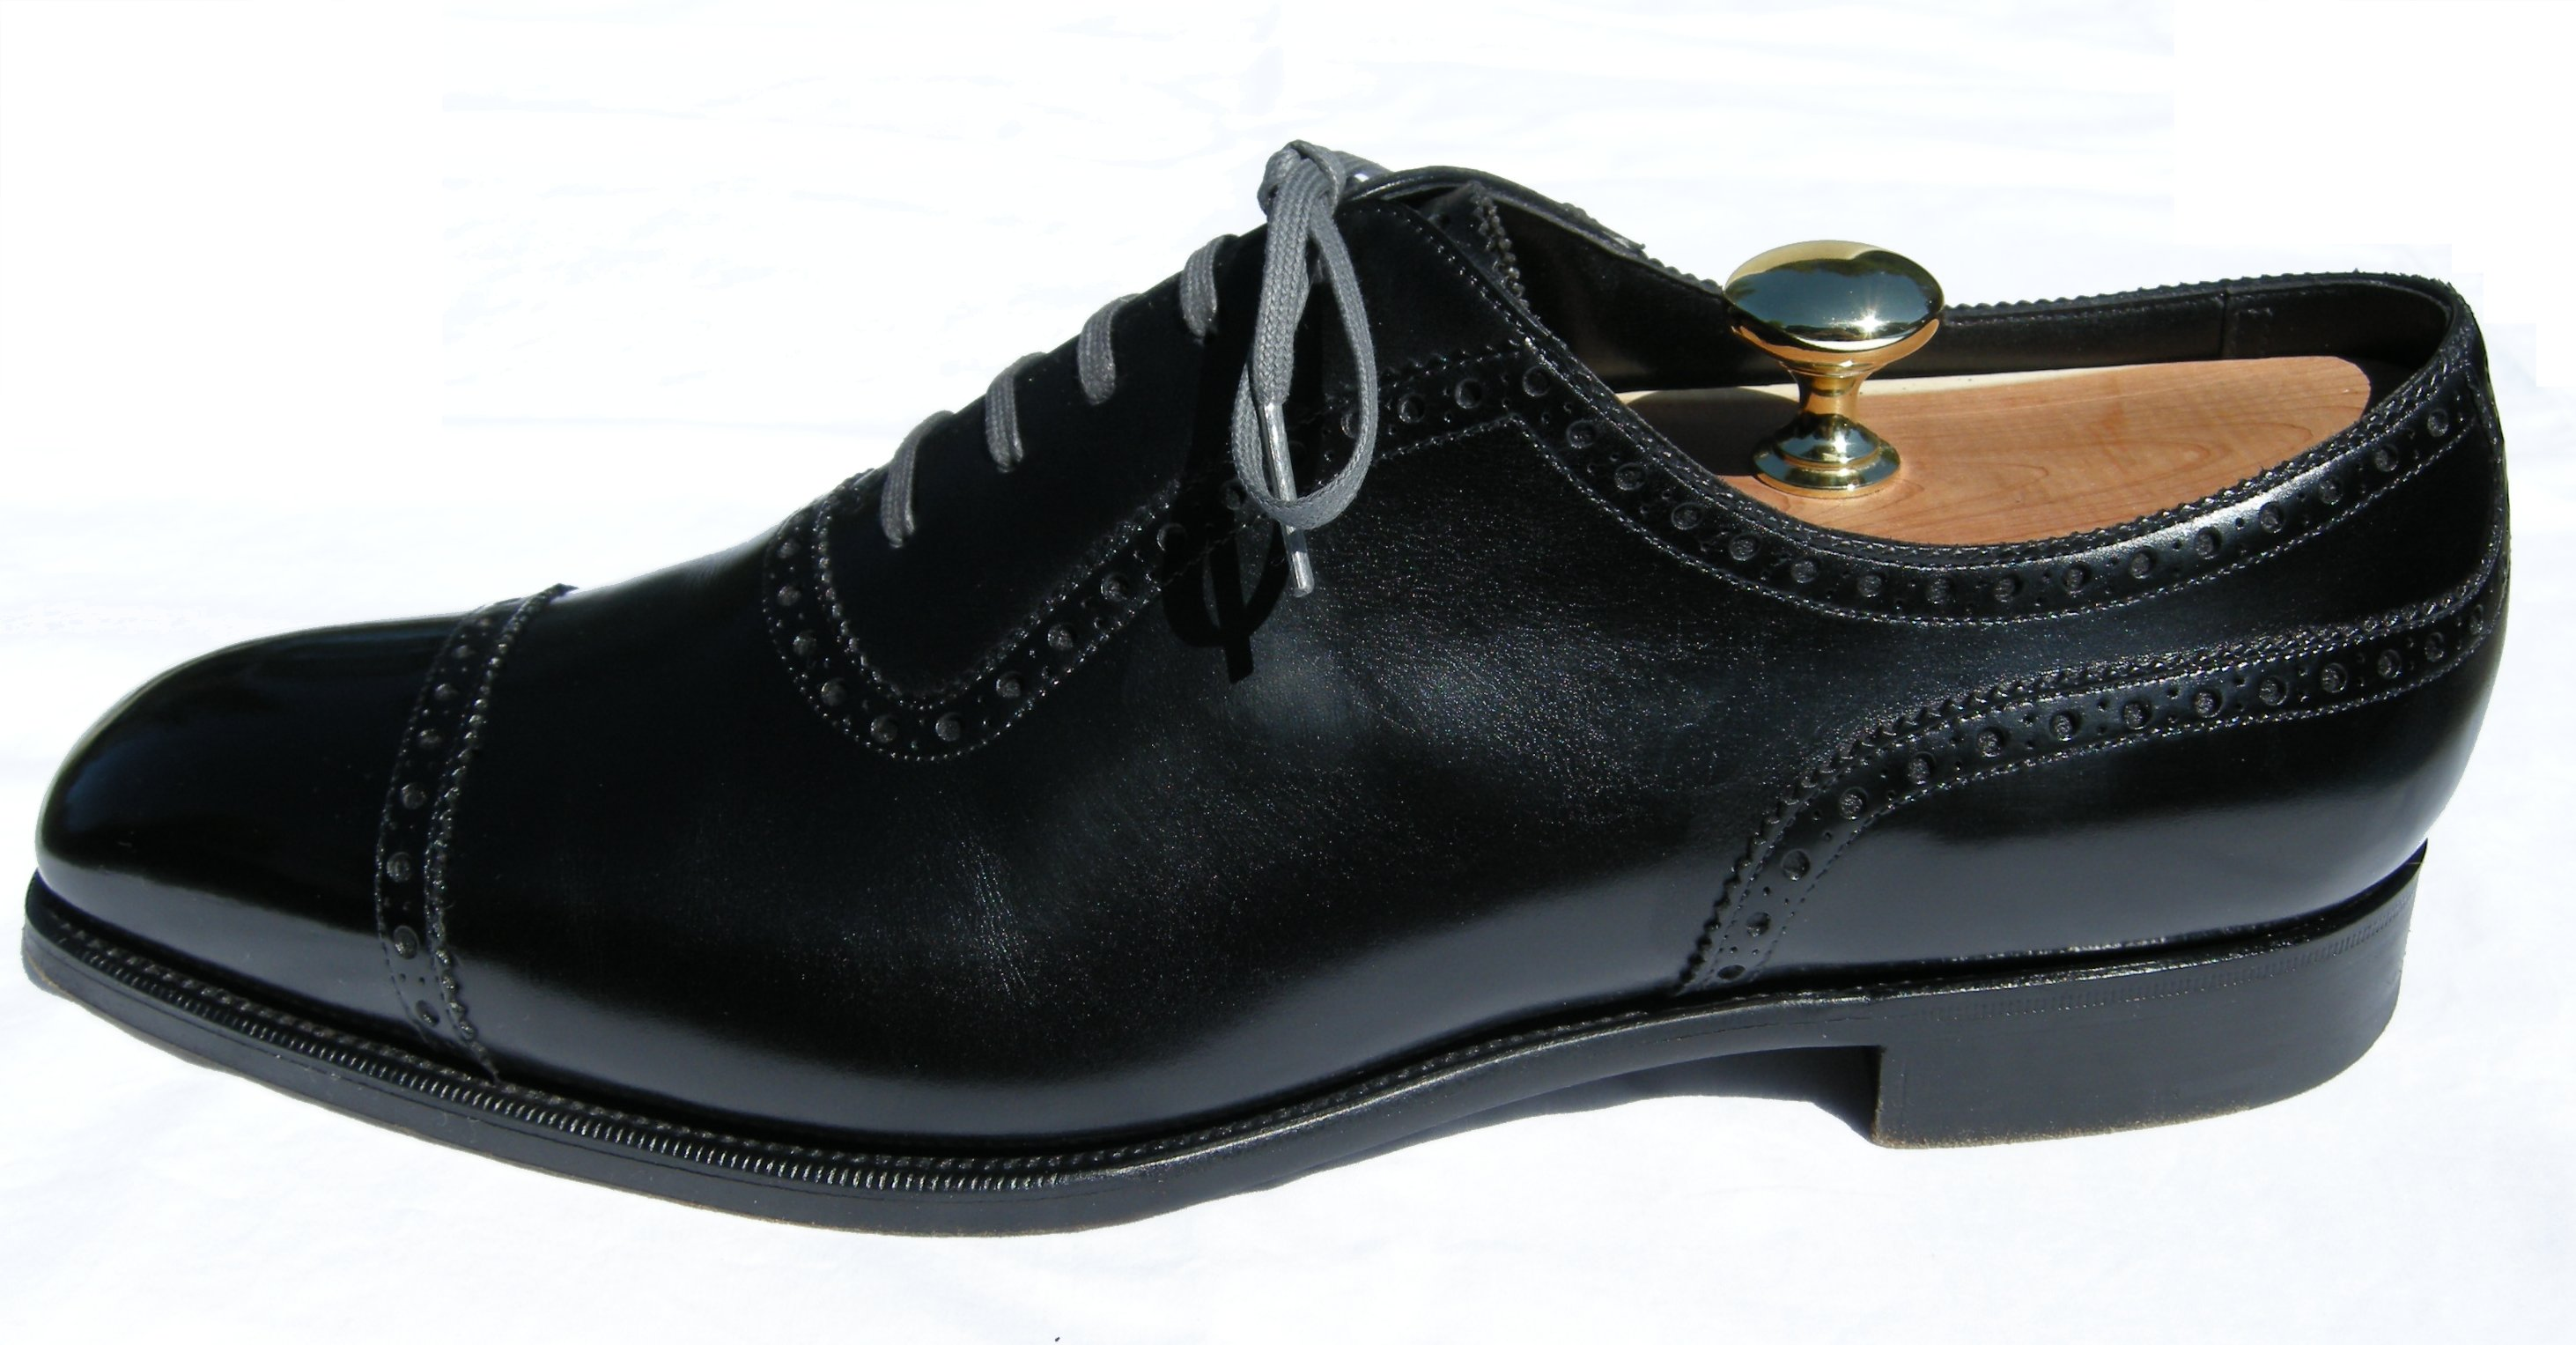 What's the opinion on colored shoe laces for dress shoes